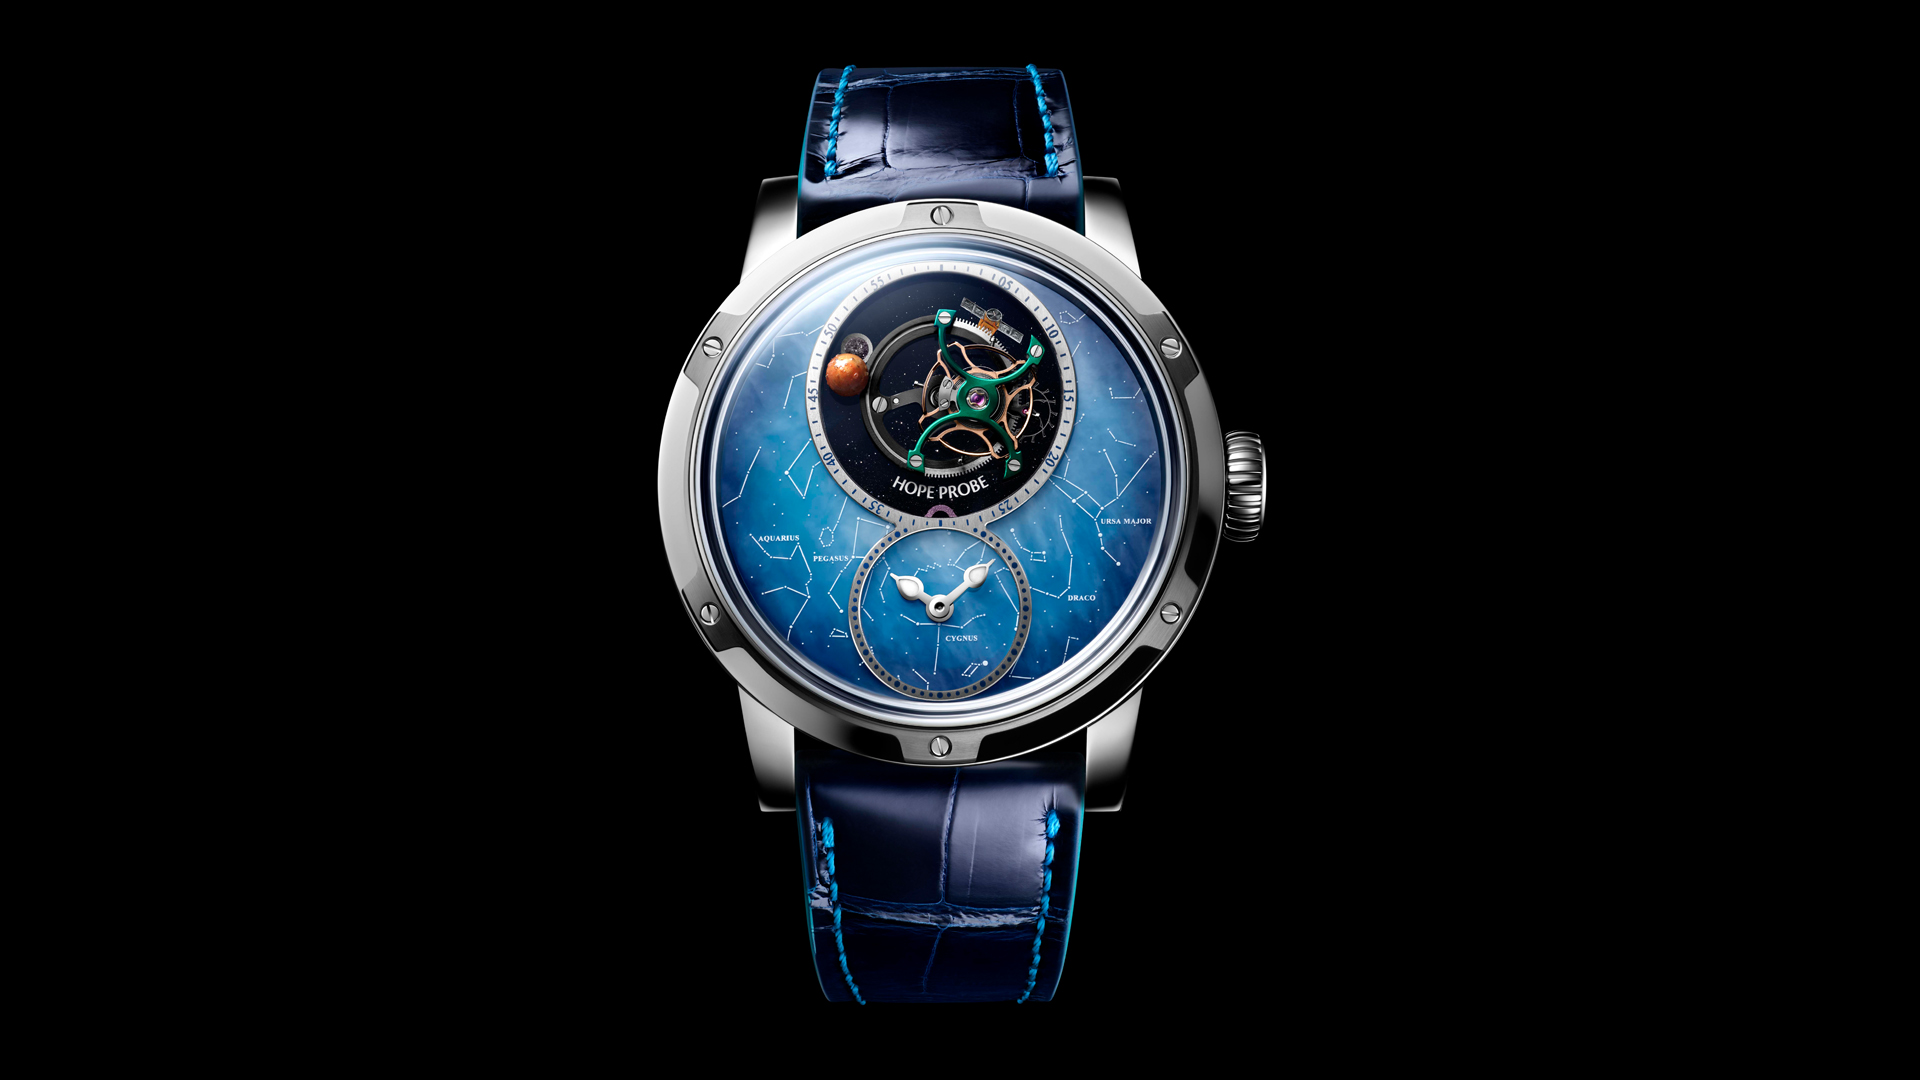 Unique Swiss watch in honor of UAE space mission